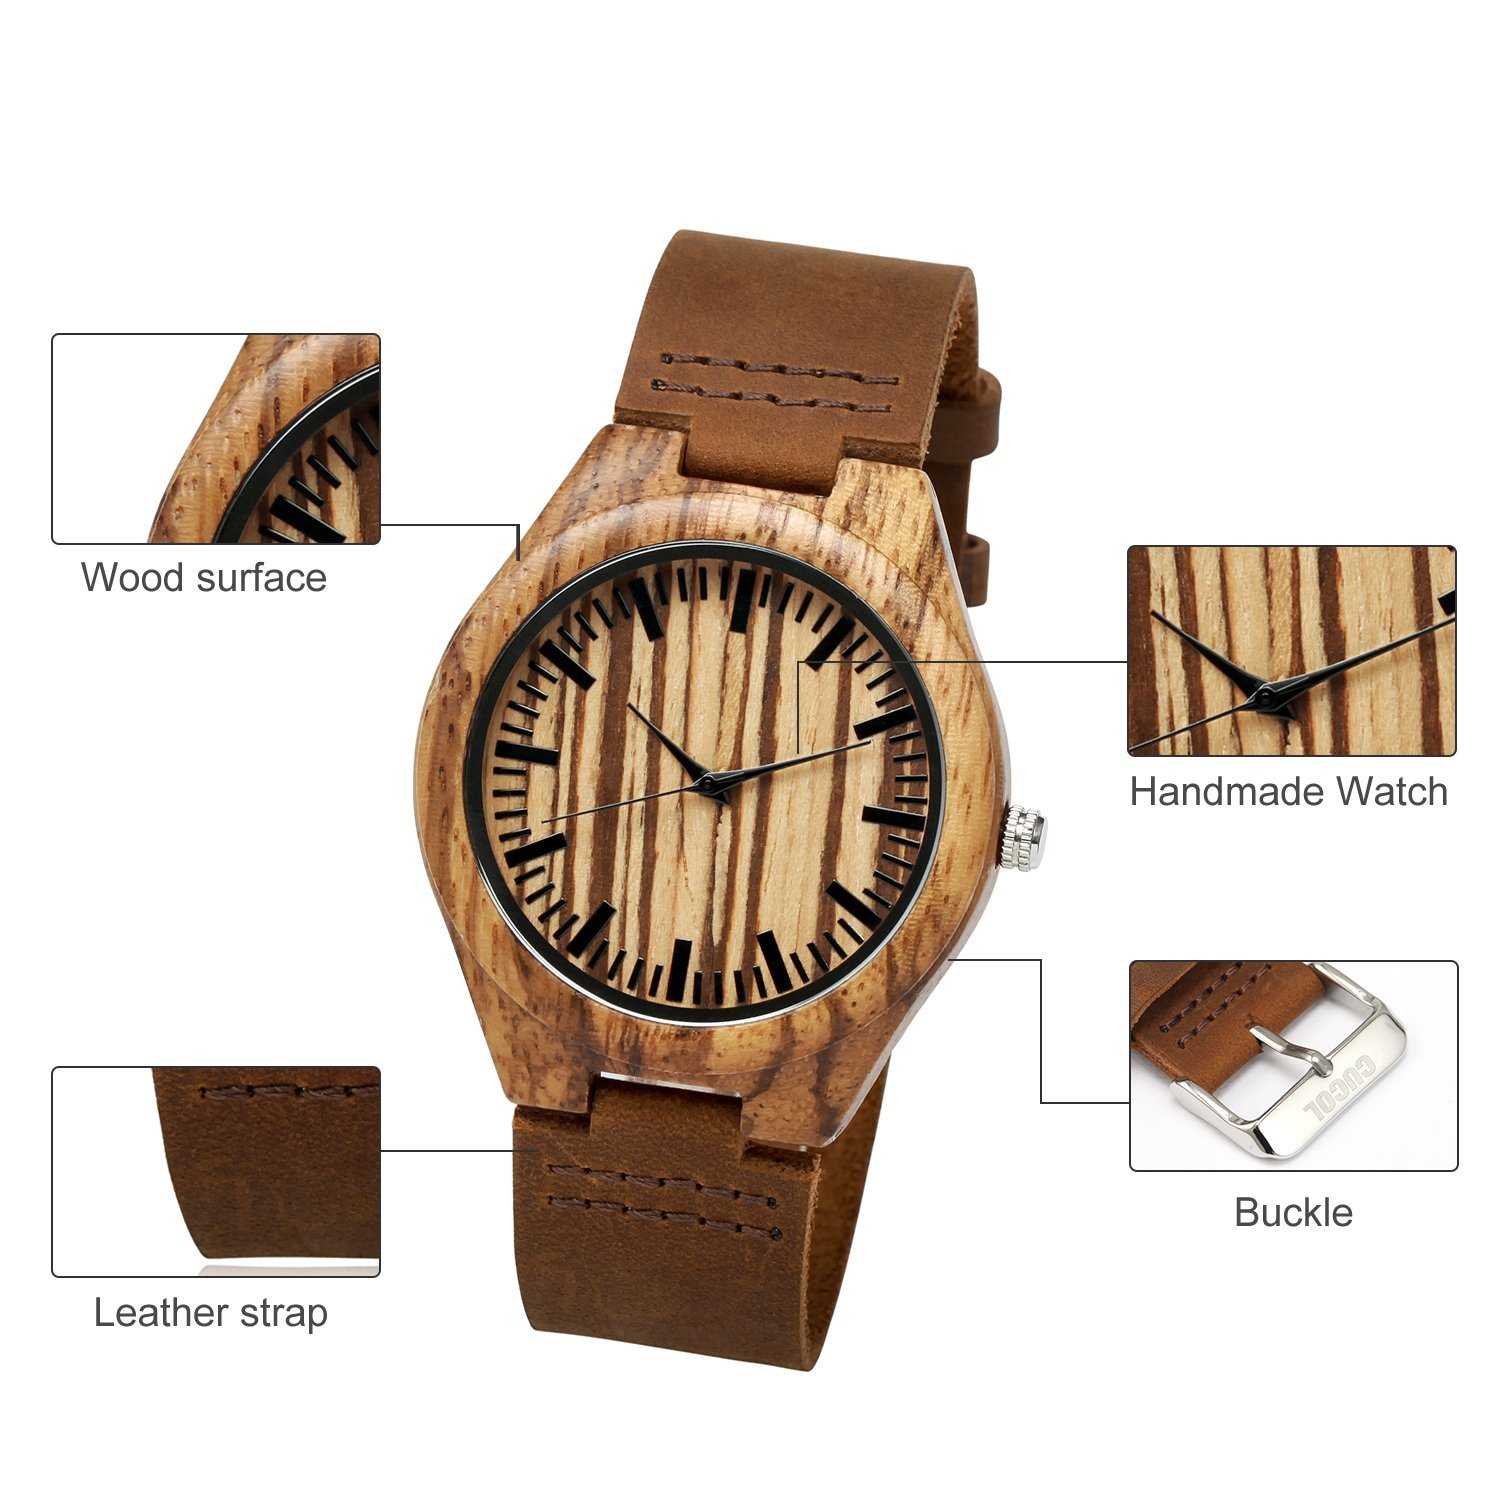 CUCOL Wooden Watches For Men Fashion Casual Watch Brown Cow Leather Strap Wood Watch With Box (Stripe) by CUCOL (Image #3)